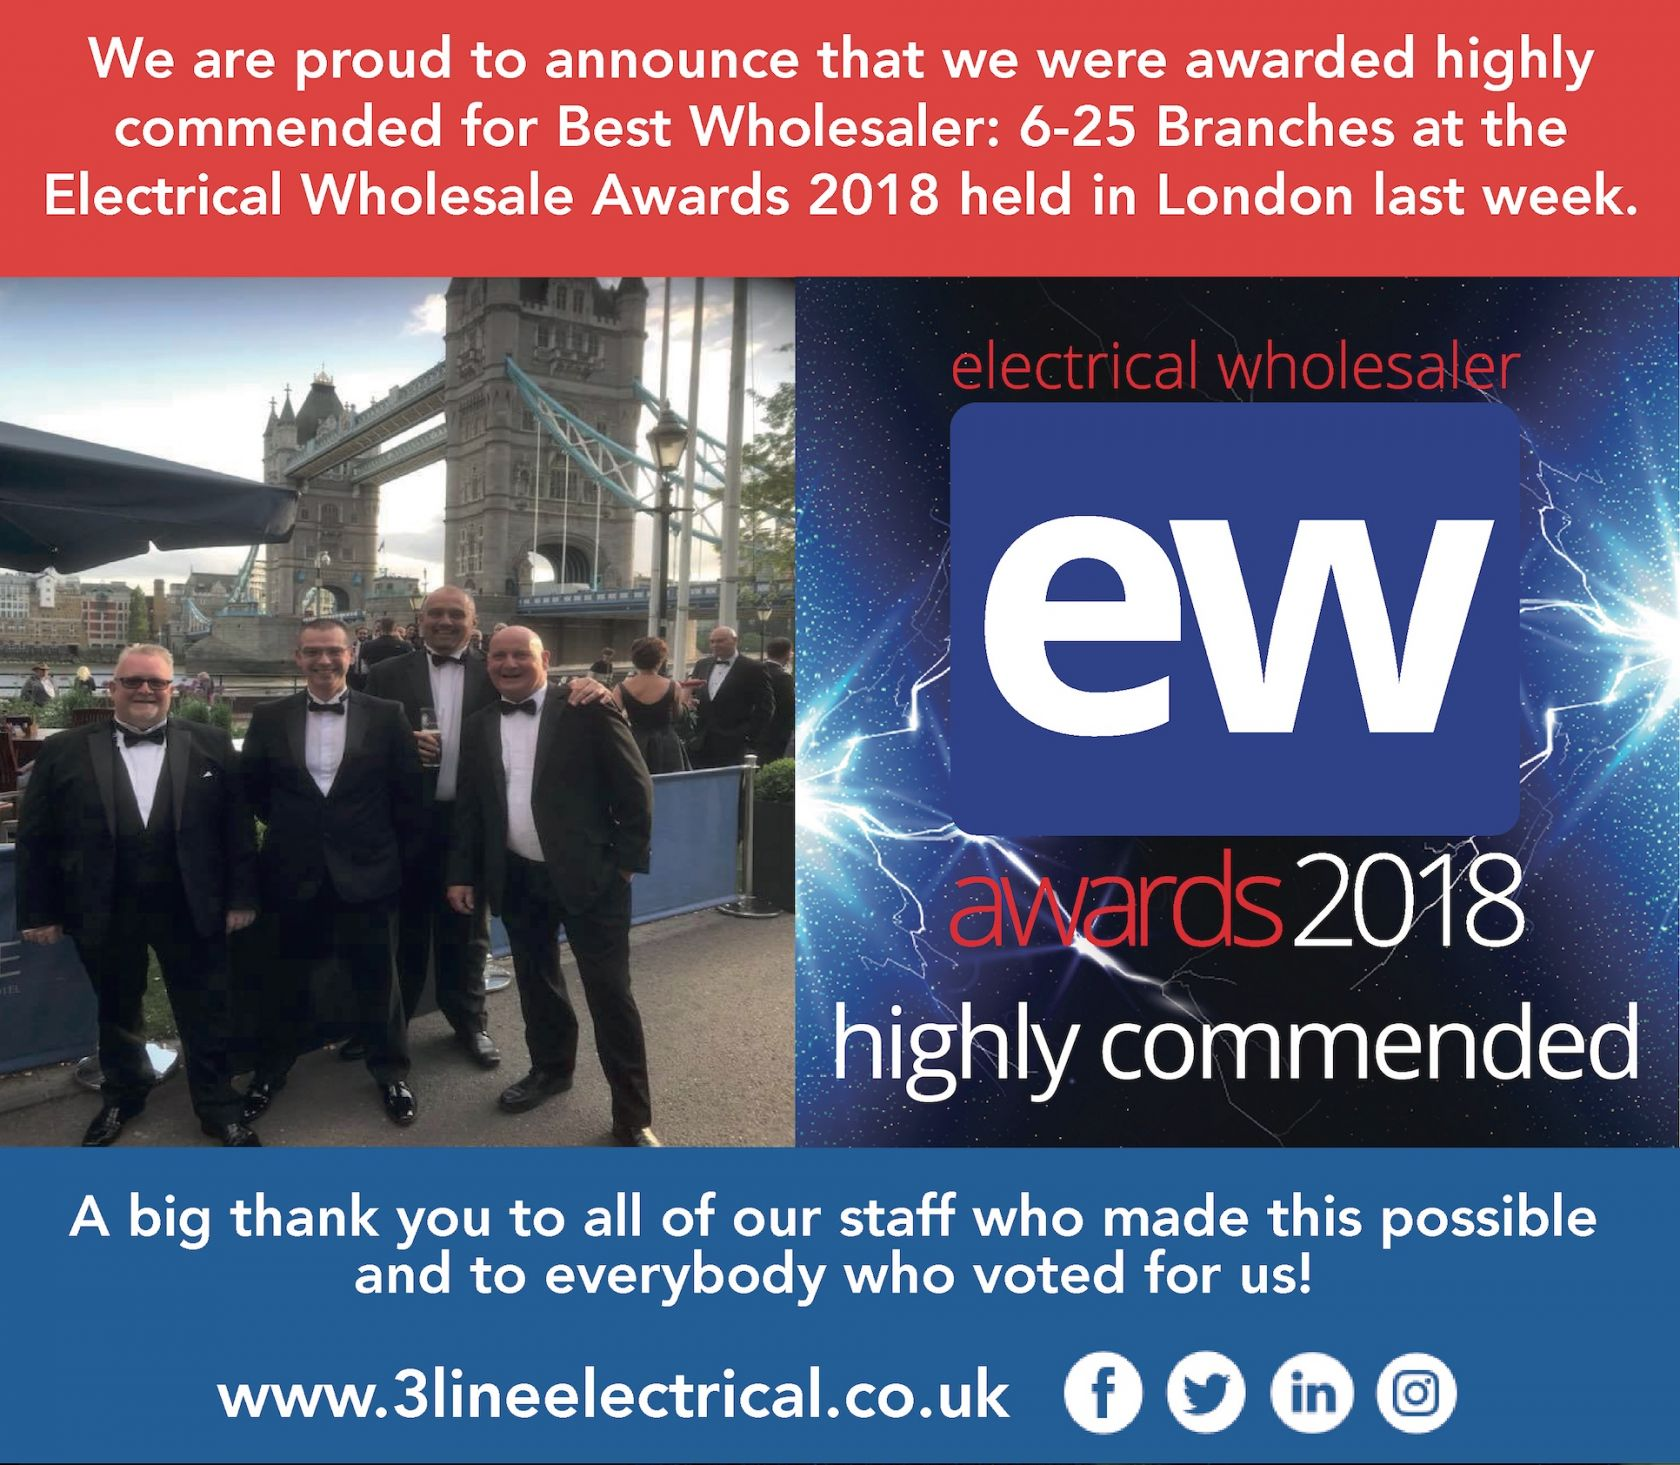 awarded highly  commended for Best Wholesaler: 6-25 Branches at the  Electrical Wholesale Awards 201